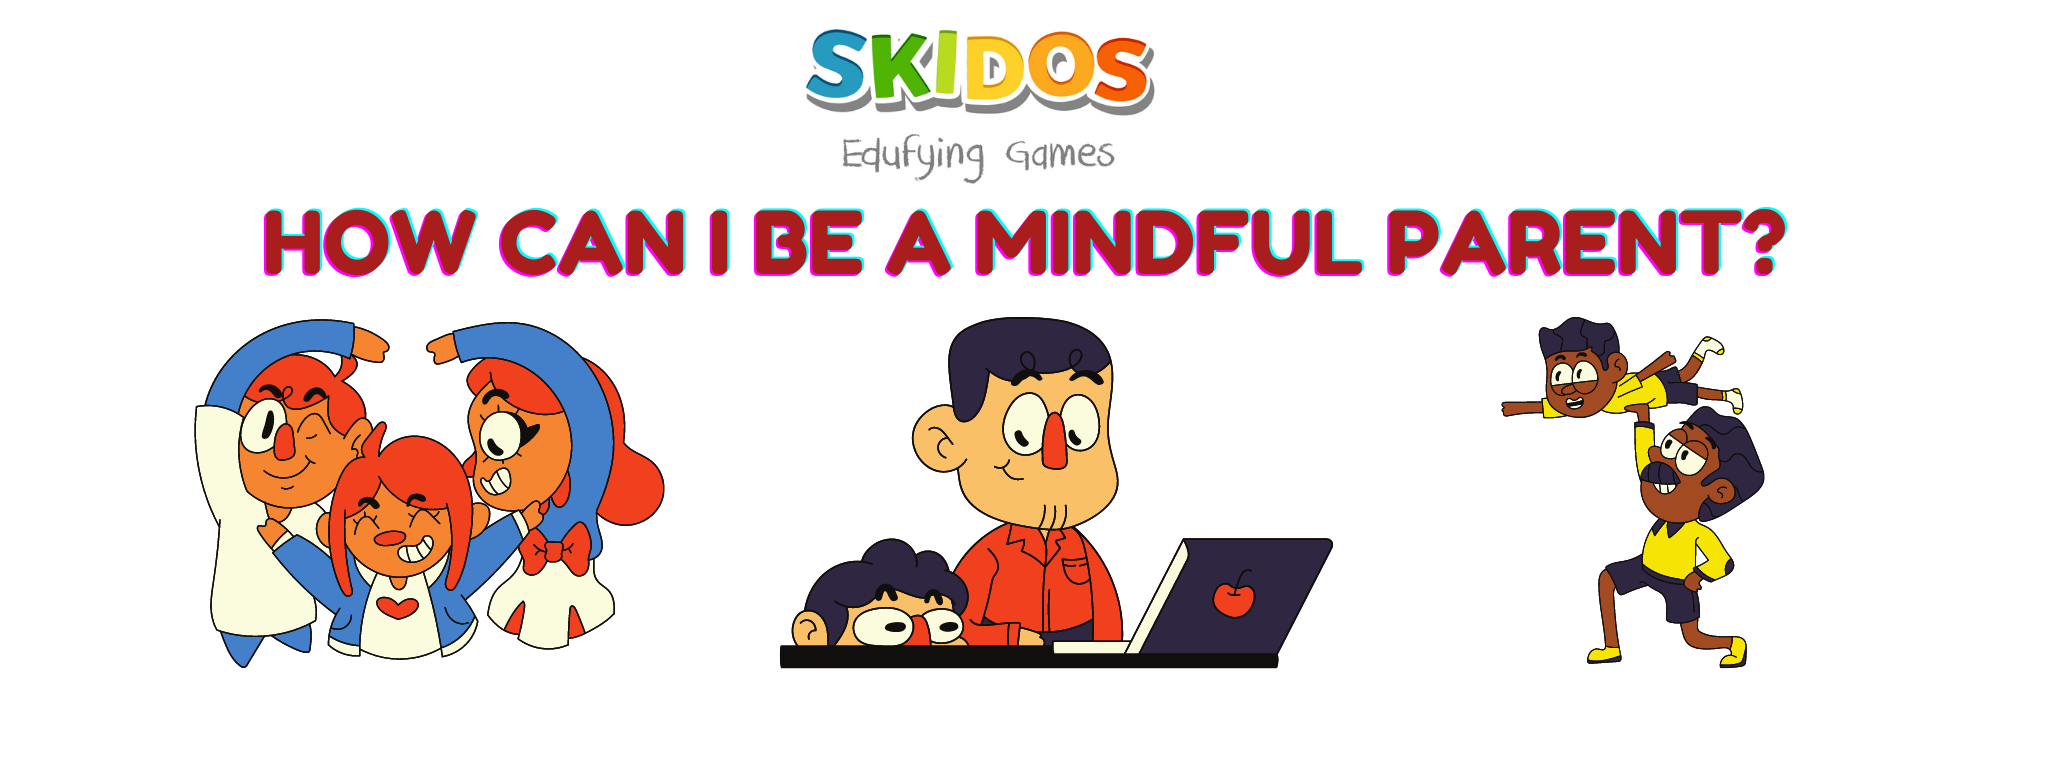 Mindful Parenting: Understand the benefits then practices!